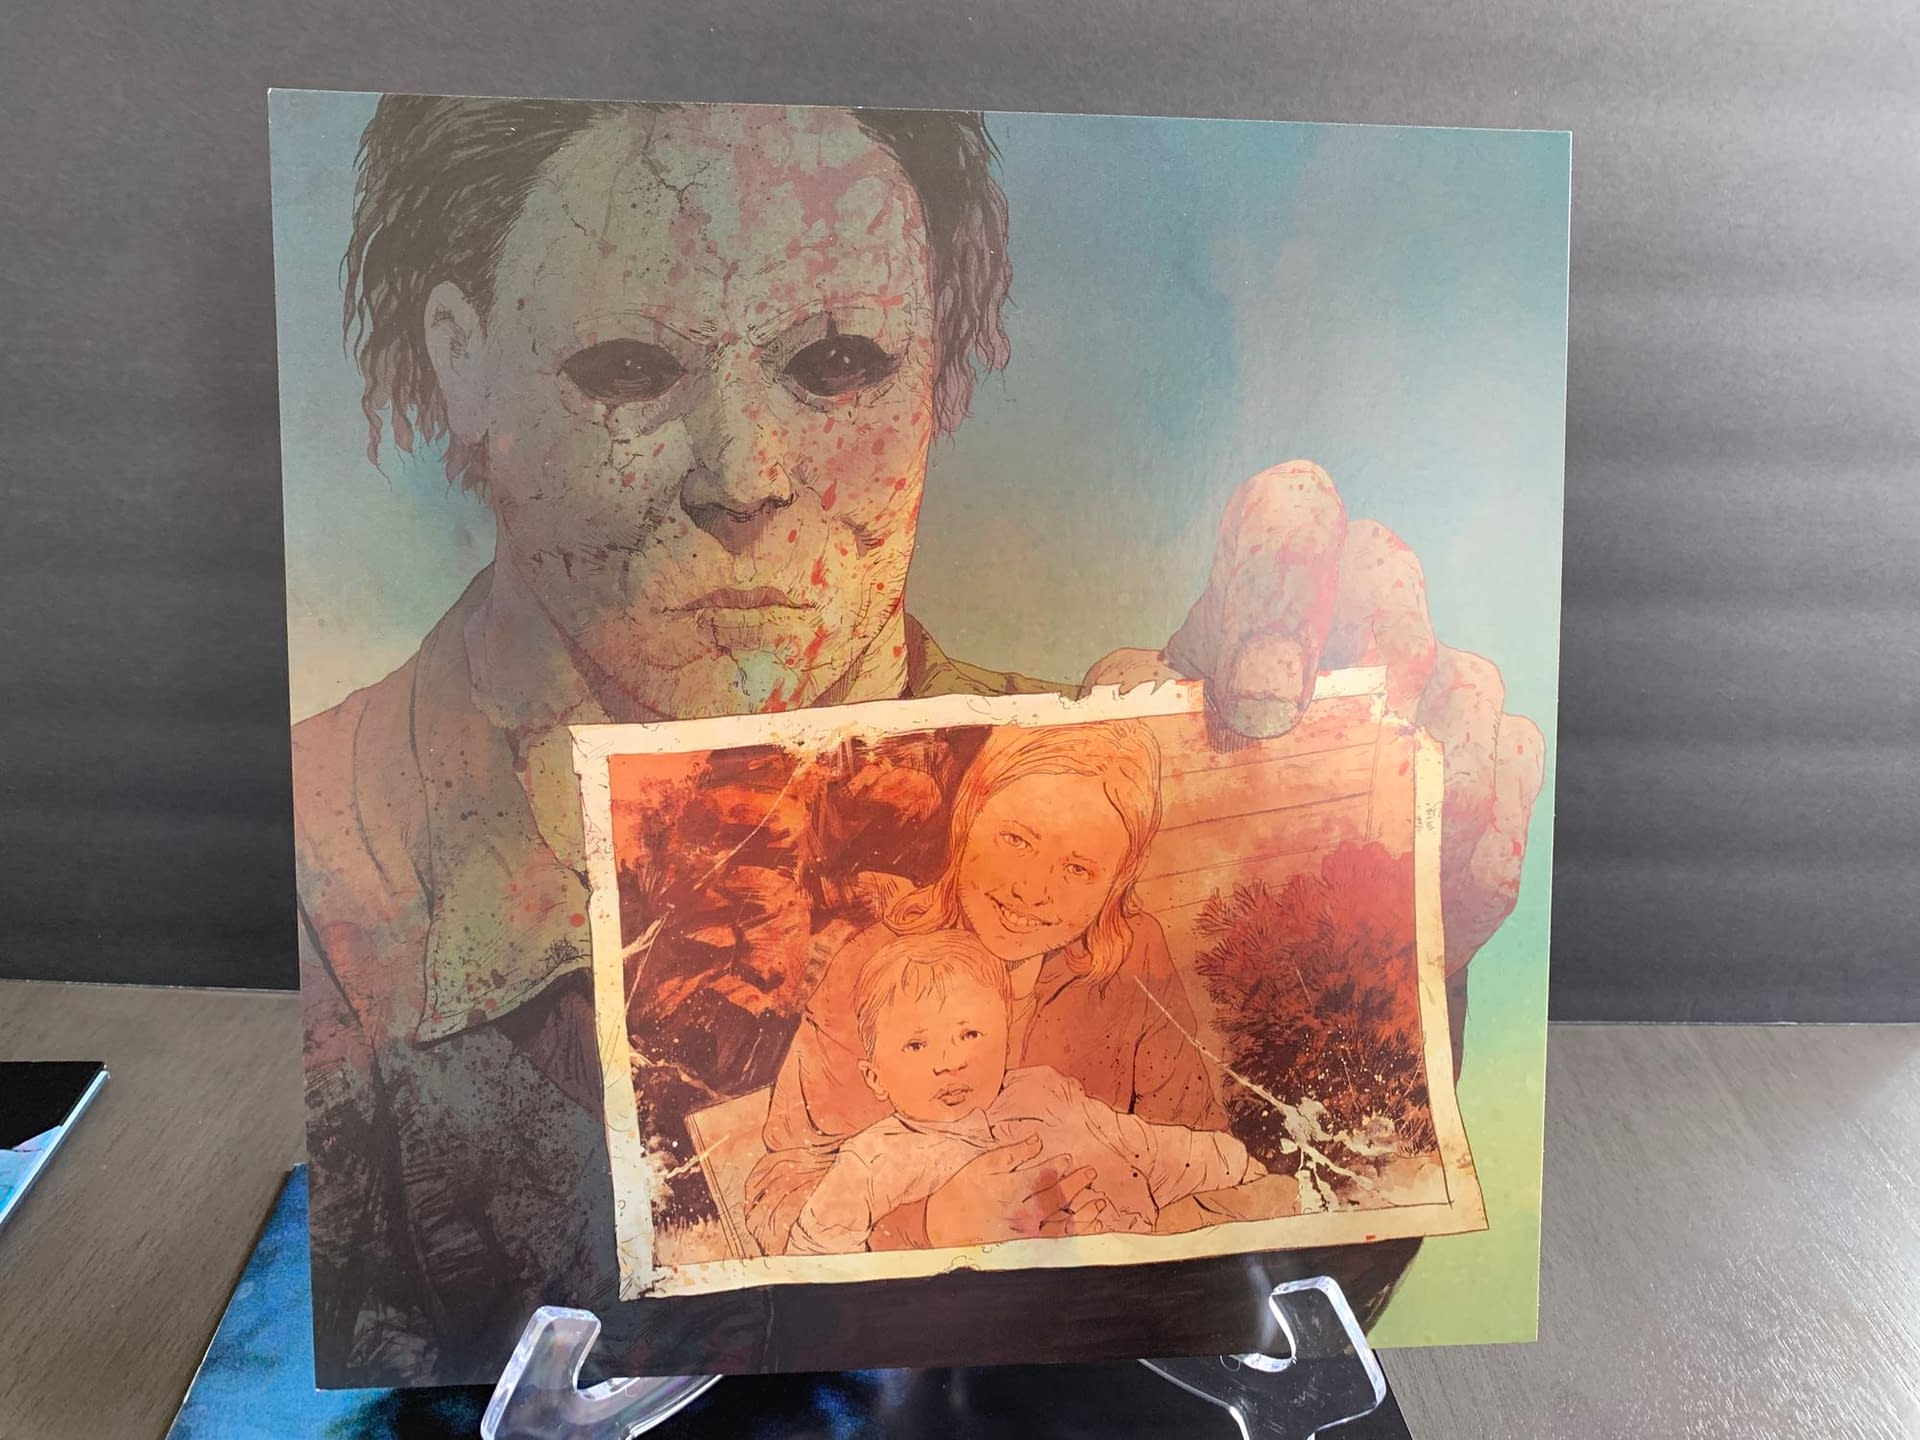 We Take A Look At Waxwork Records Rob Zombie Halloween Vinyl Releases